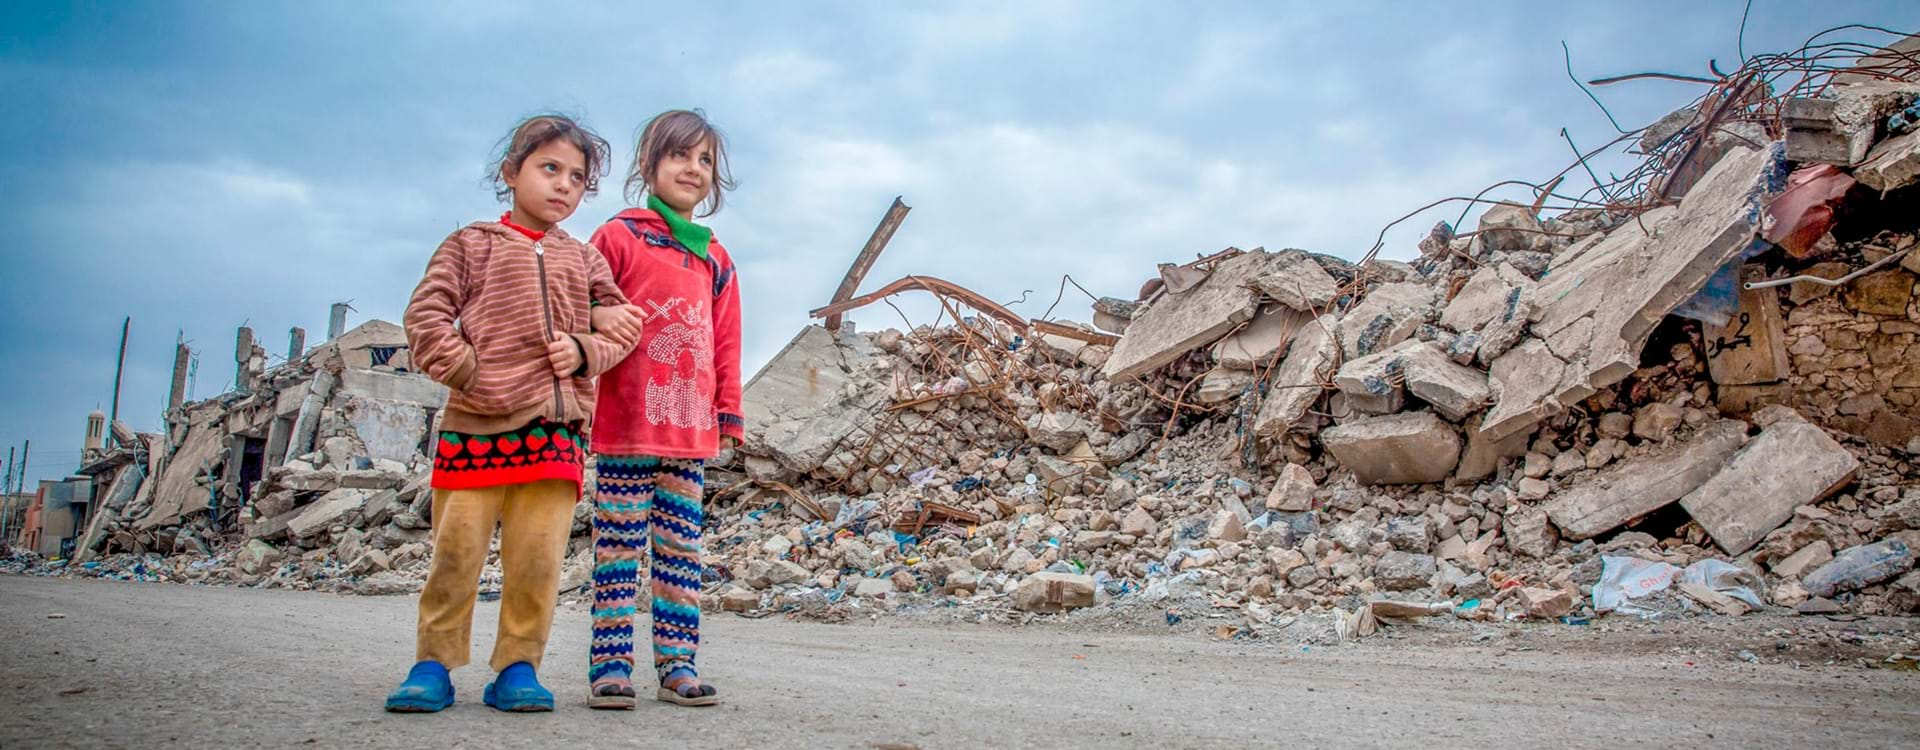 FOTO ©UNICEF Anmar Scaled Web